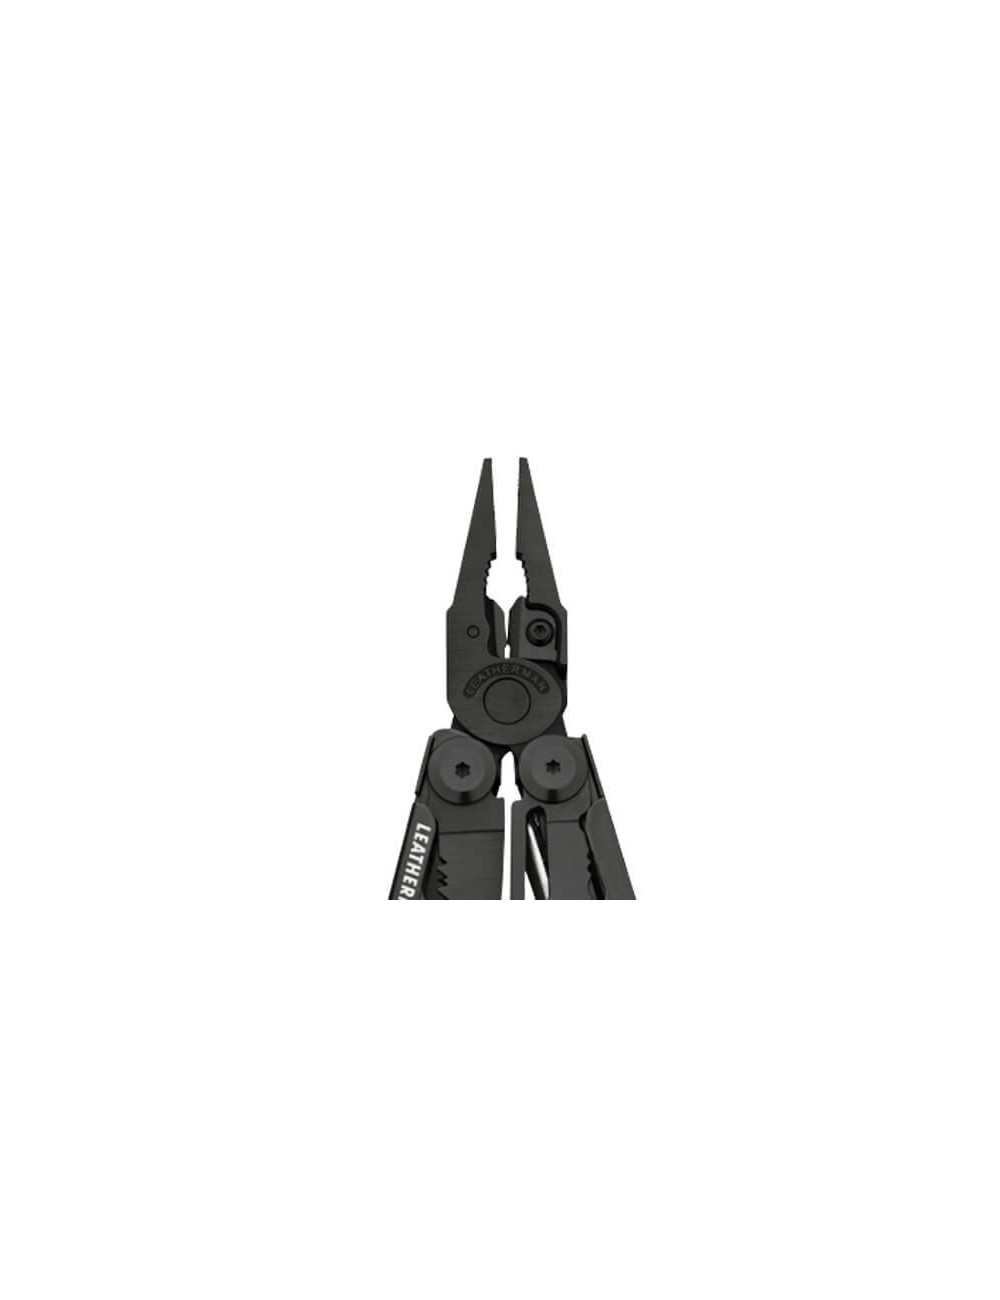 Leatherman multitool Signal Black 19-delig met schede - Zwart